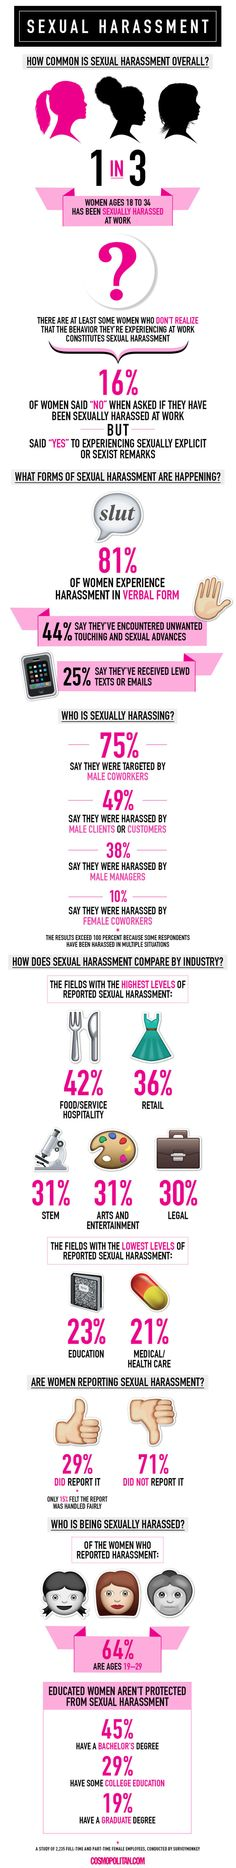 The Most Important Infographic Ever Posted. Survey: 1 in 3 Women Has Been Sexually Harassed at Work